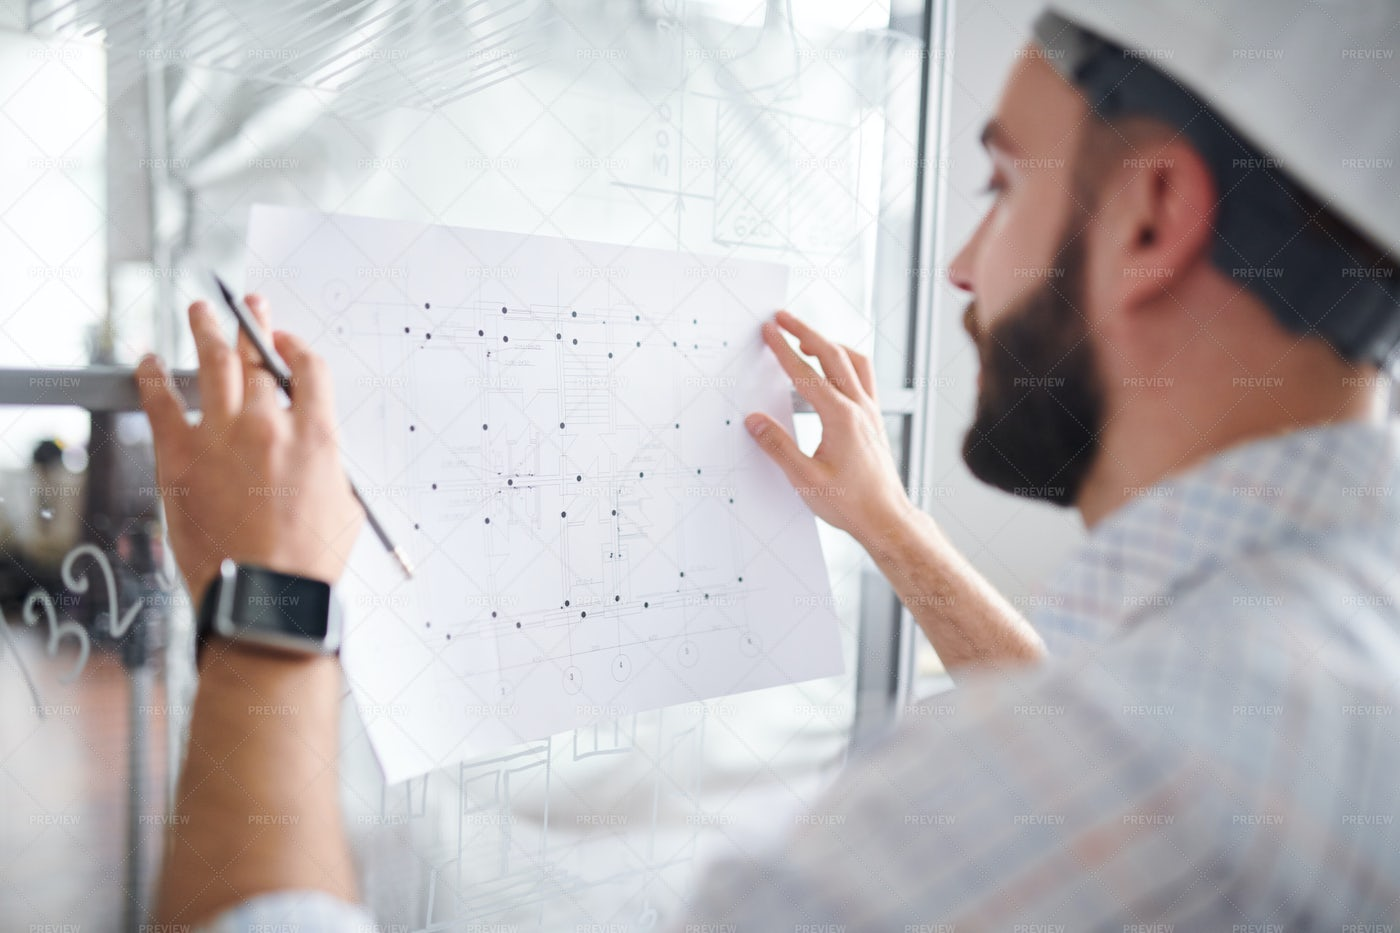 Making Sketch Of Construction: Stock Photos